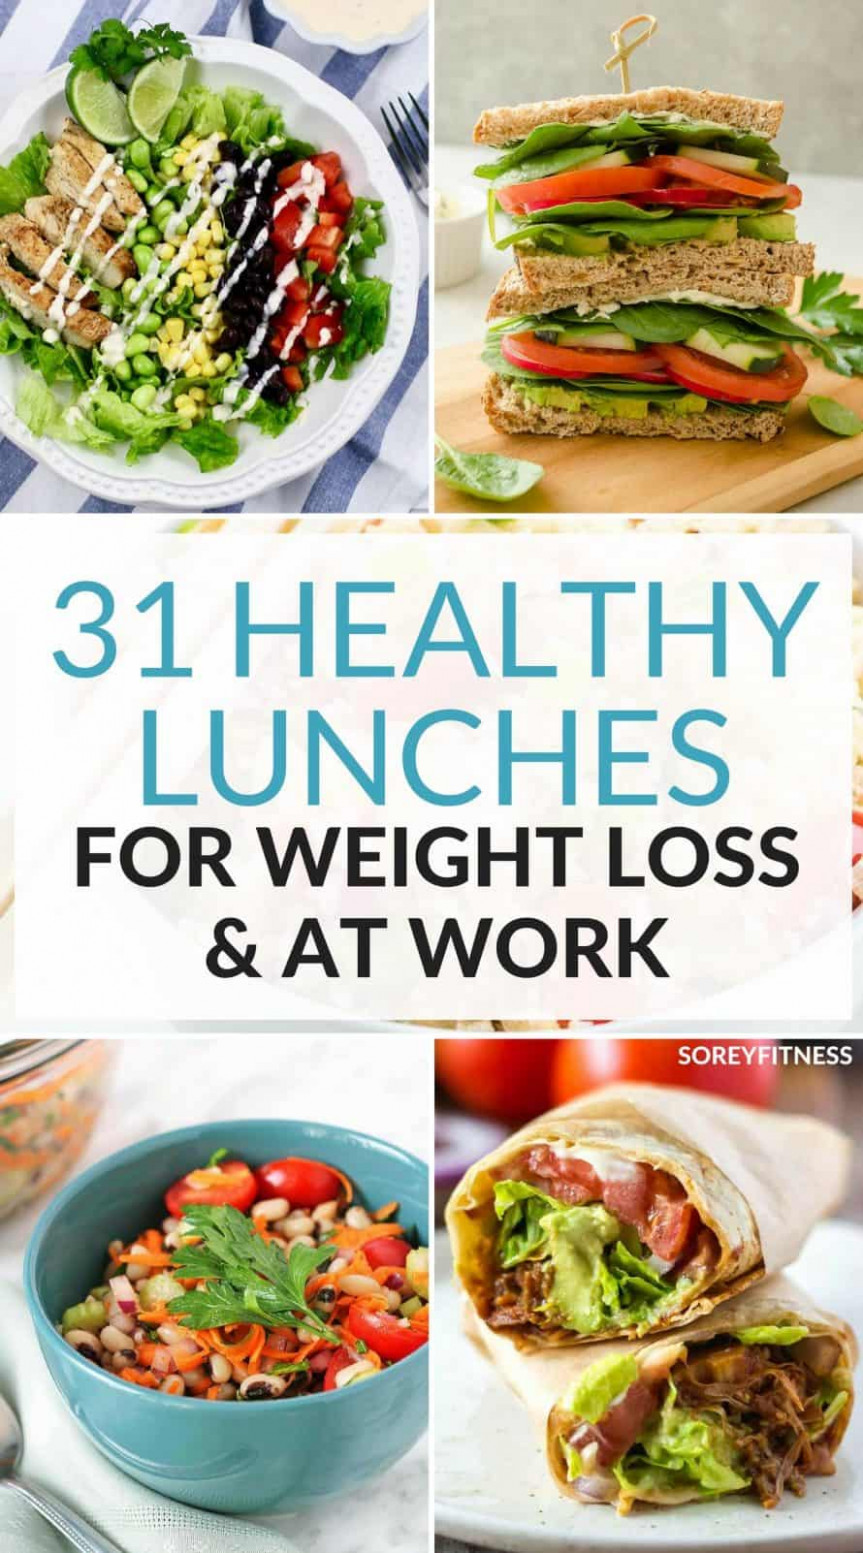 31 Healthy Lunch Ideas For Weight Loss - Easy Meals for ..